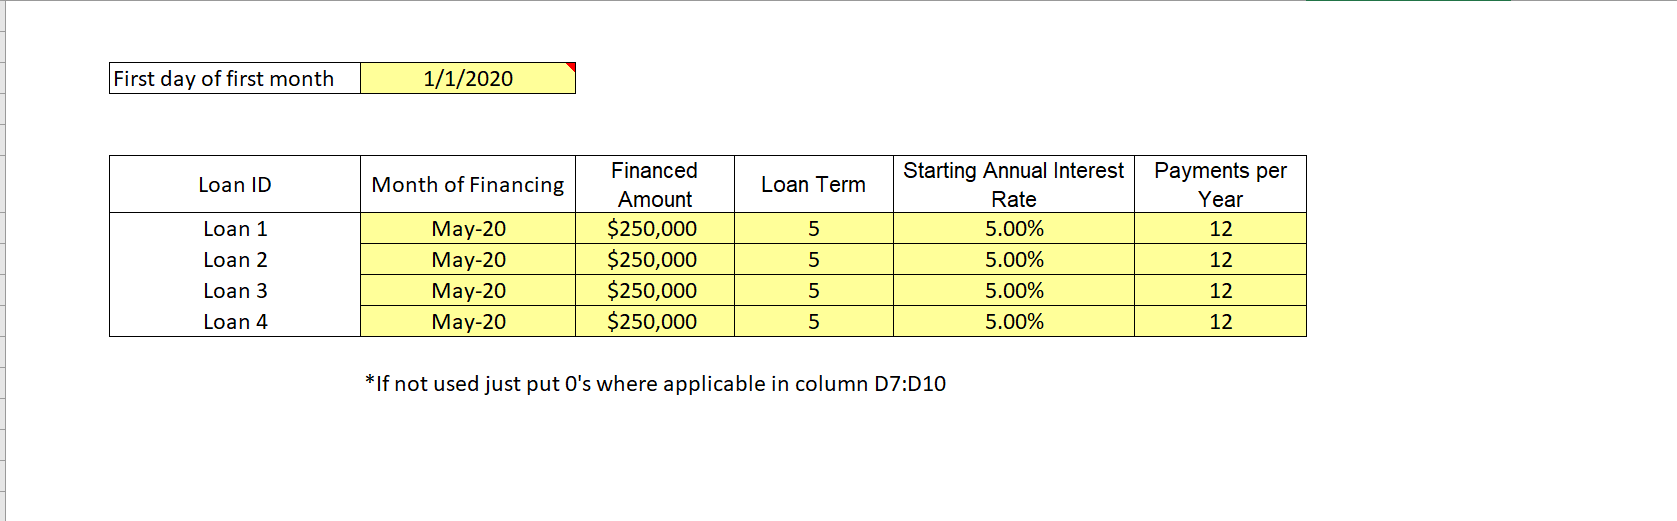 Equipment Rental DCF Analysis and Operating Model